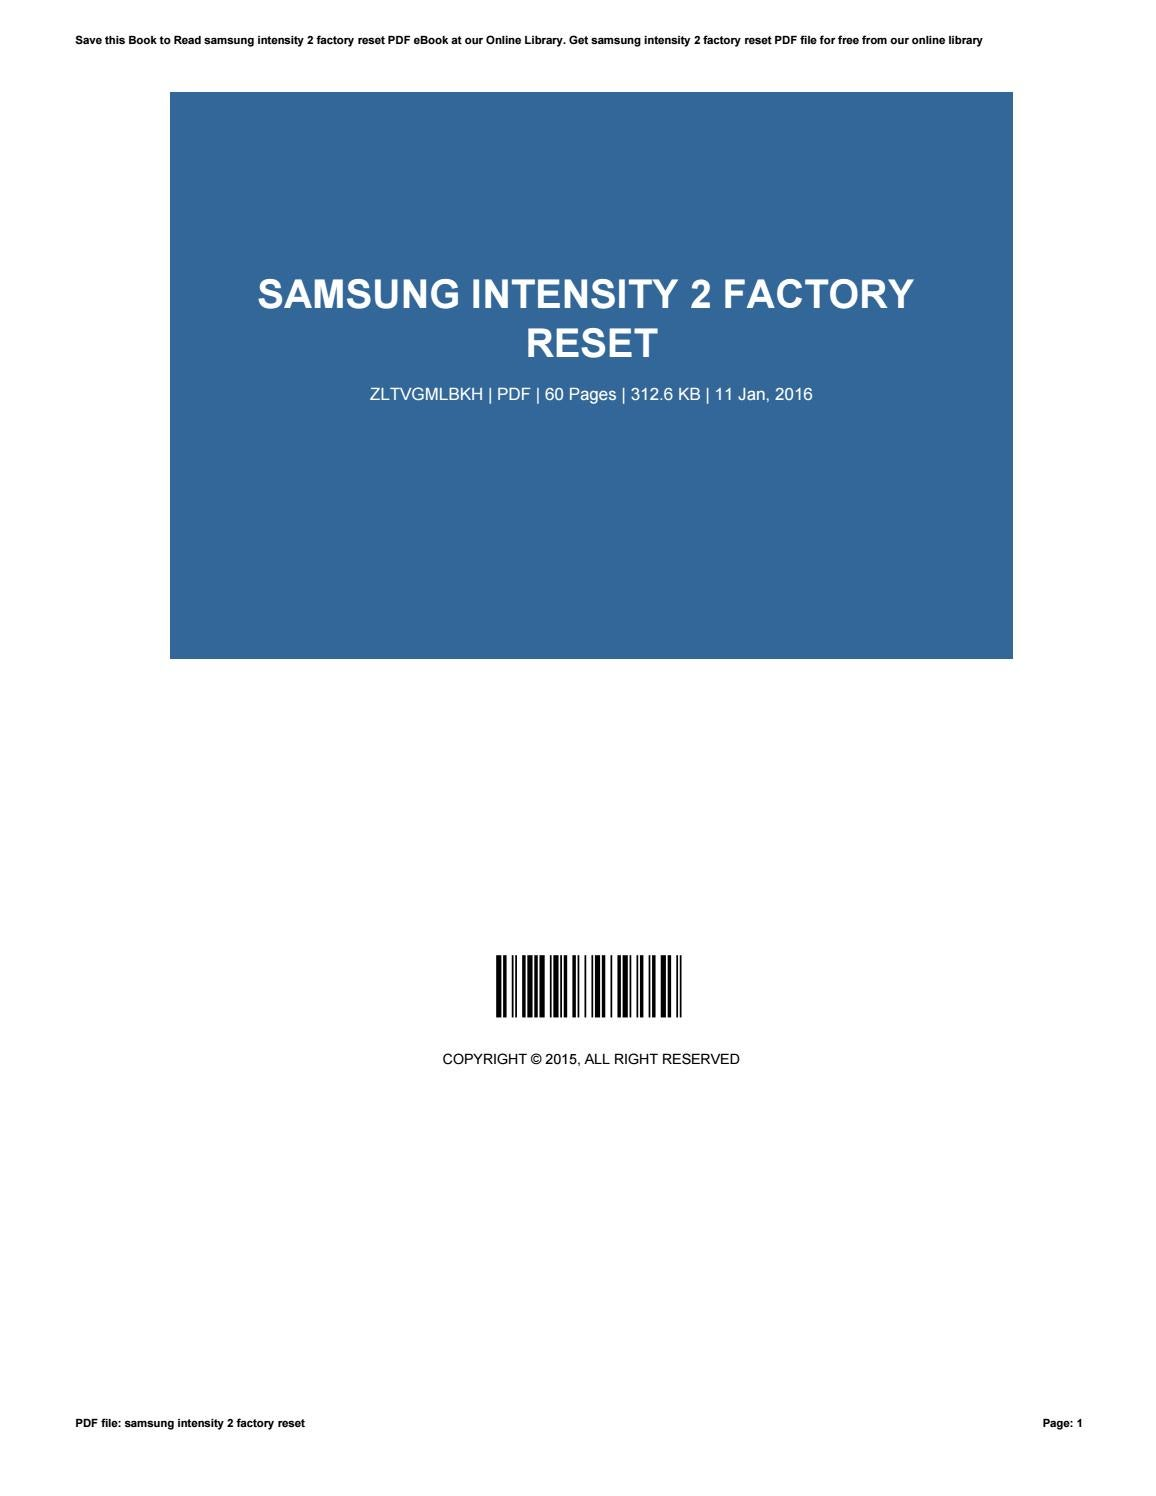 Samsung intensity 2 factory reset by KayleenBrady2567 - issuu